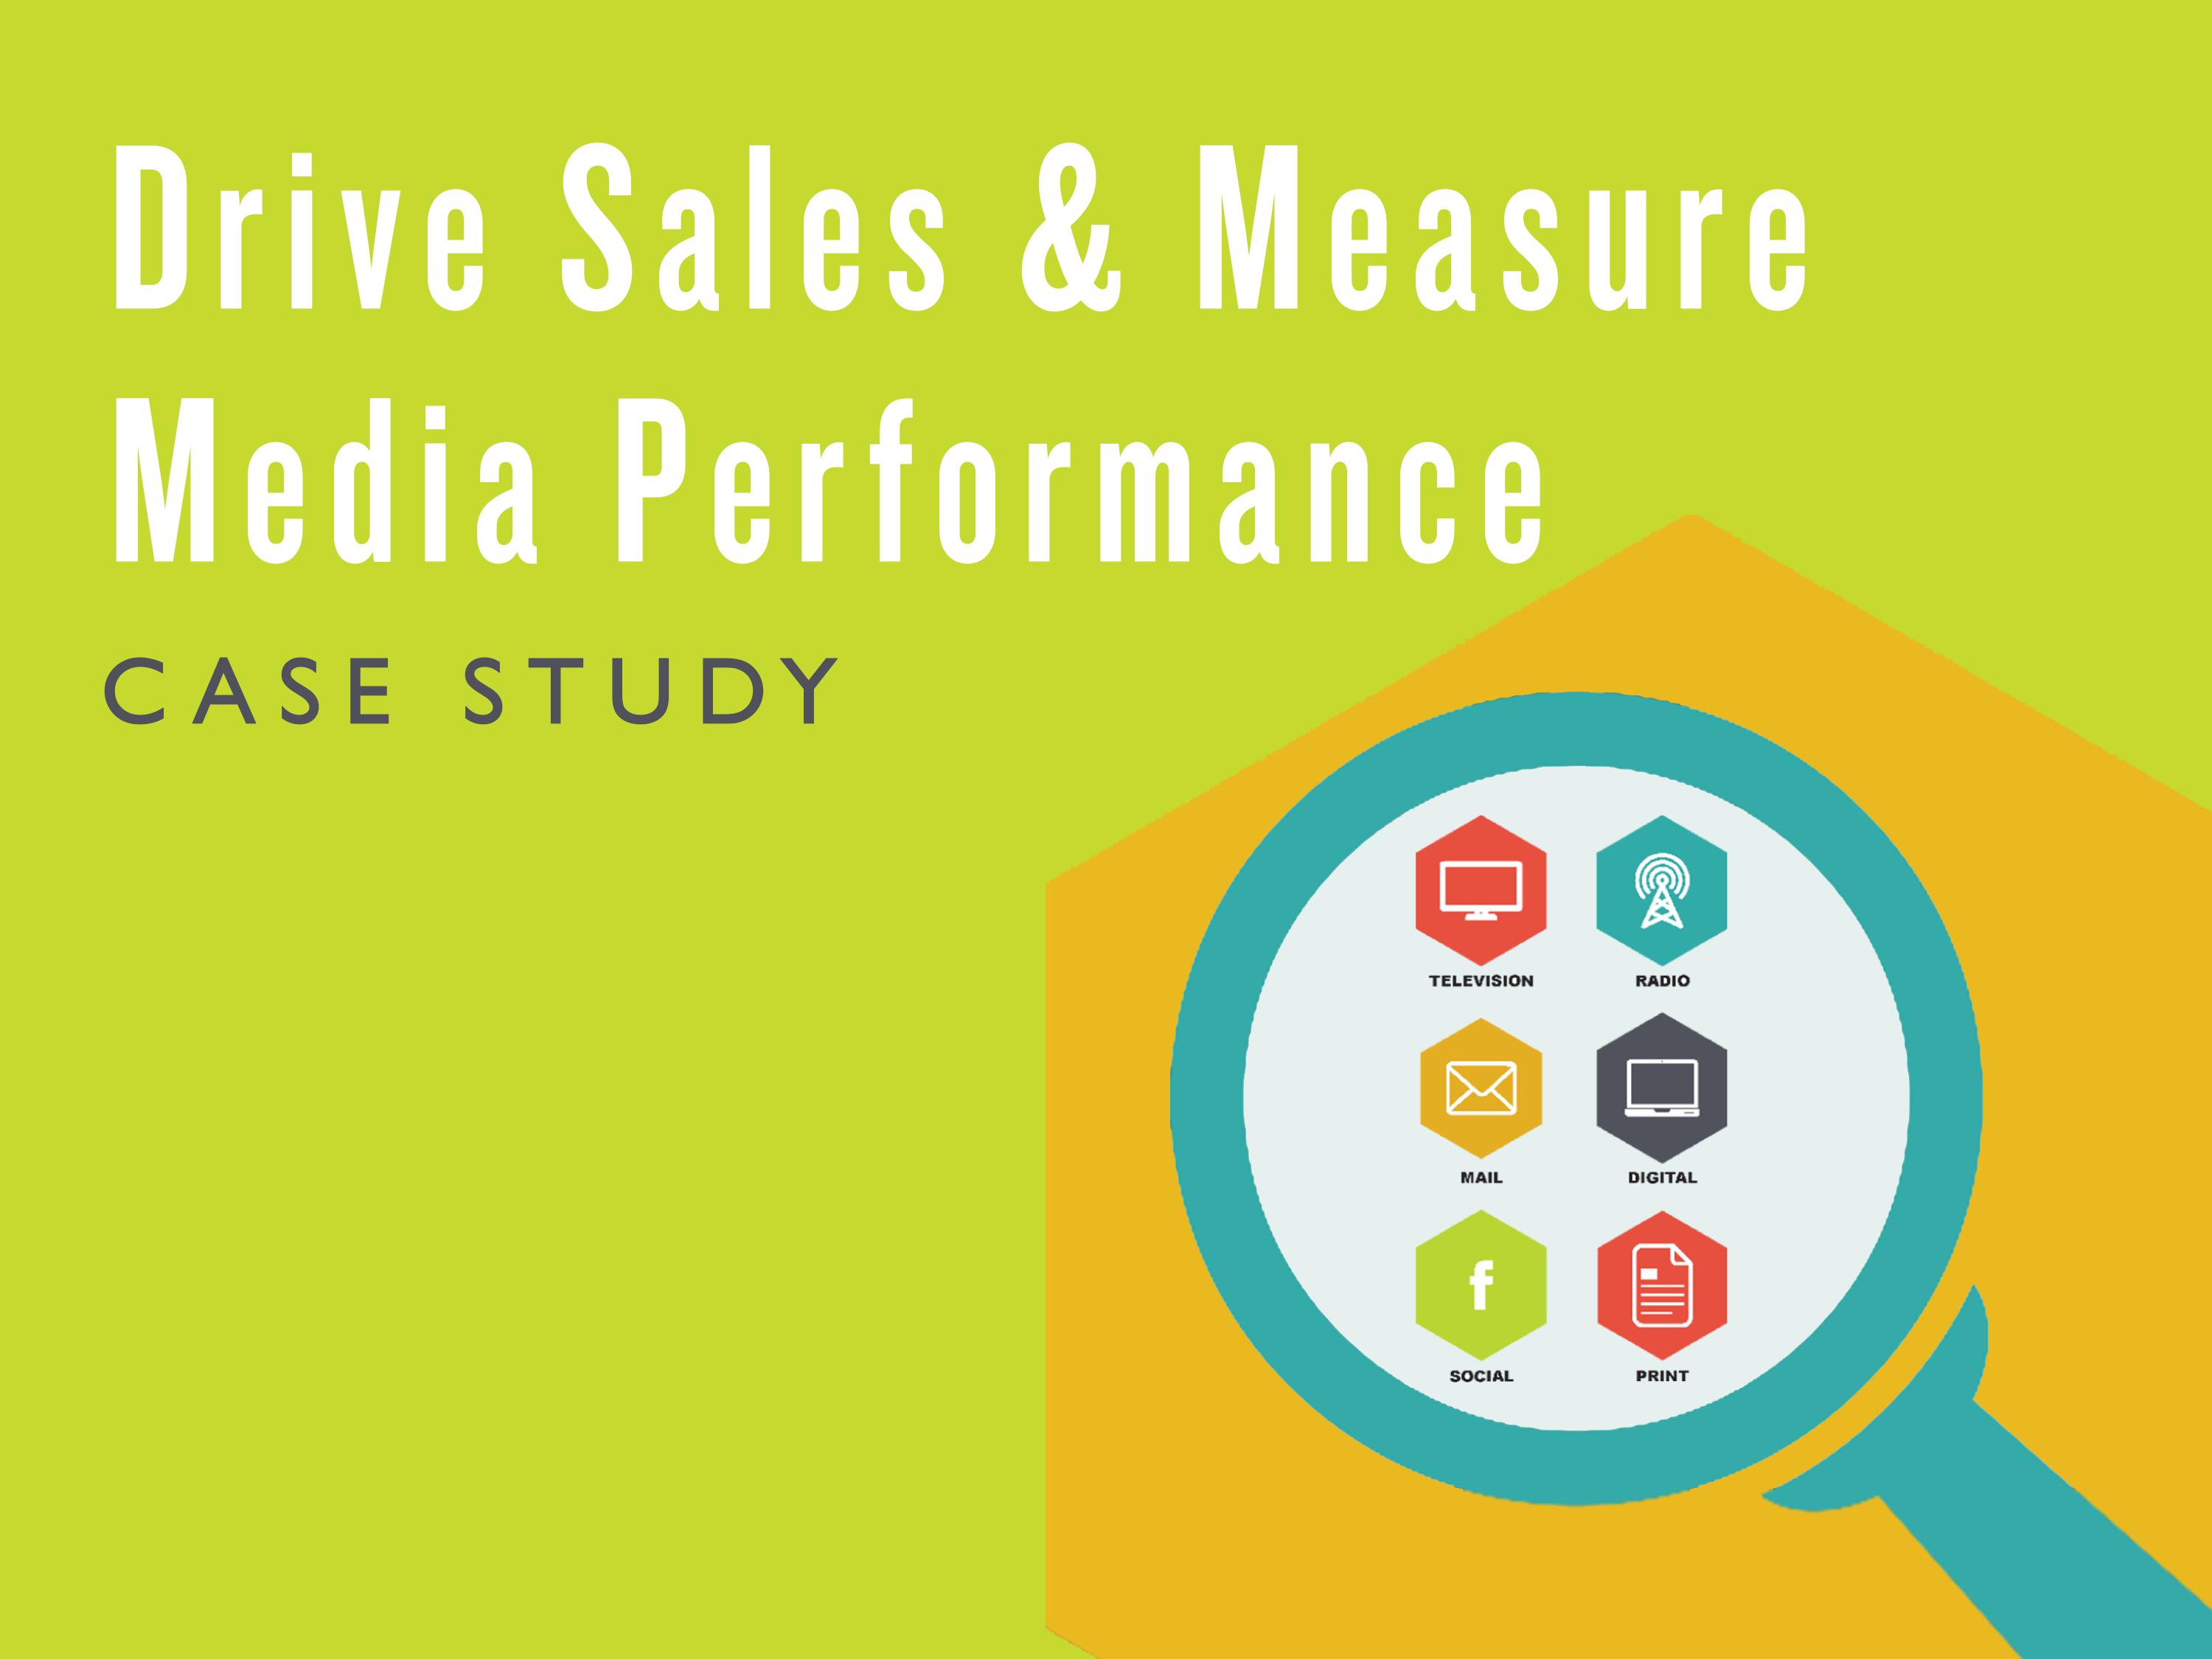 Drive Sale & Measure Media Performance